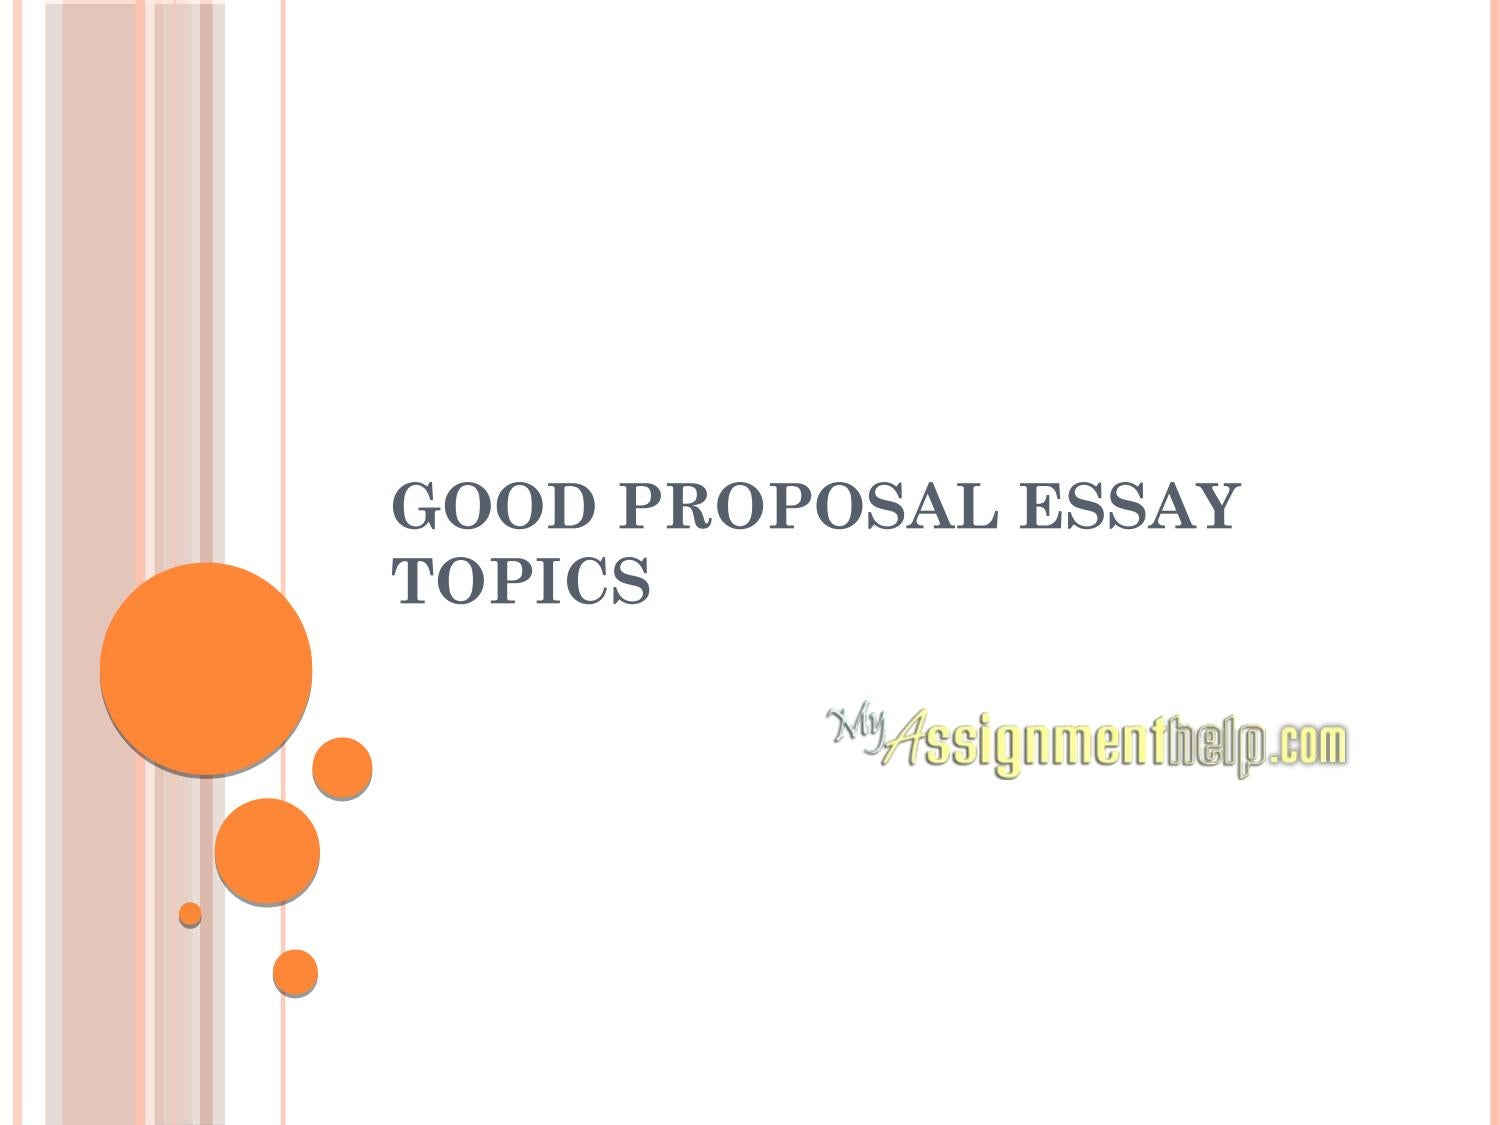 Good Proposal Essay Topics By Myassignmenthelpcom  Issuu